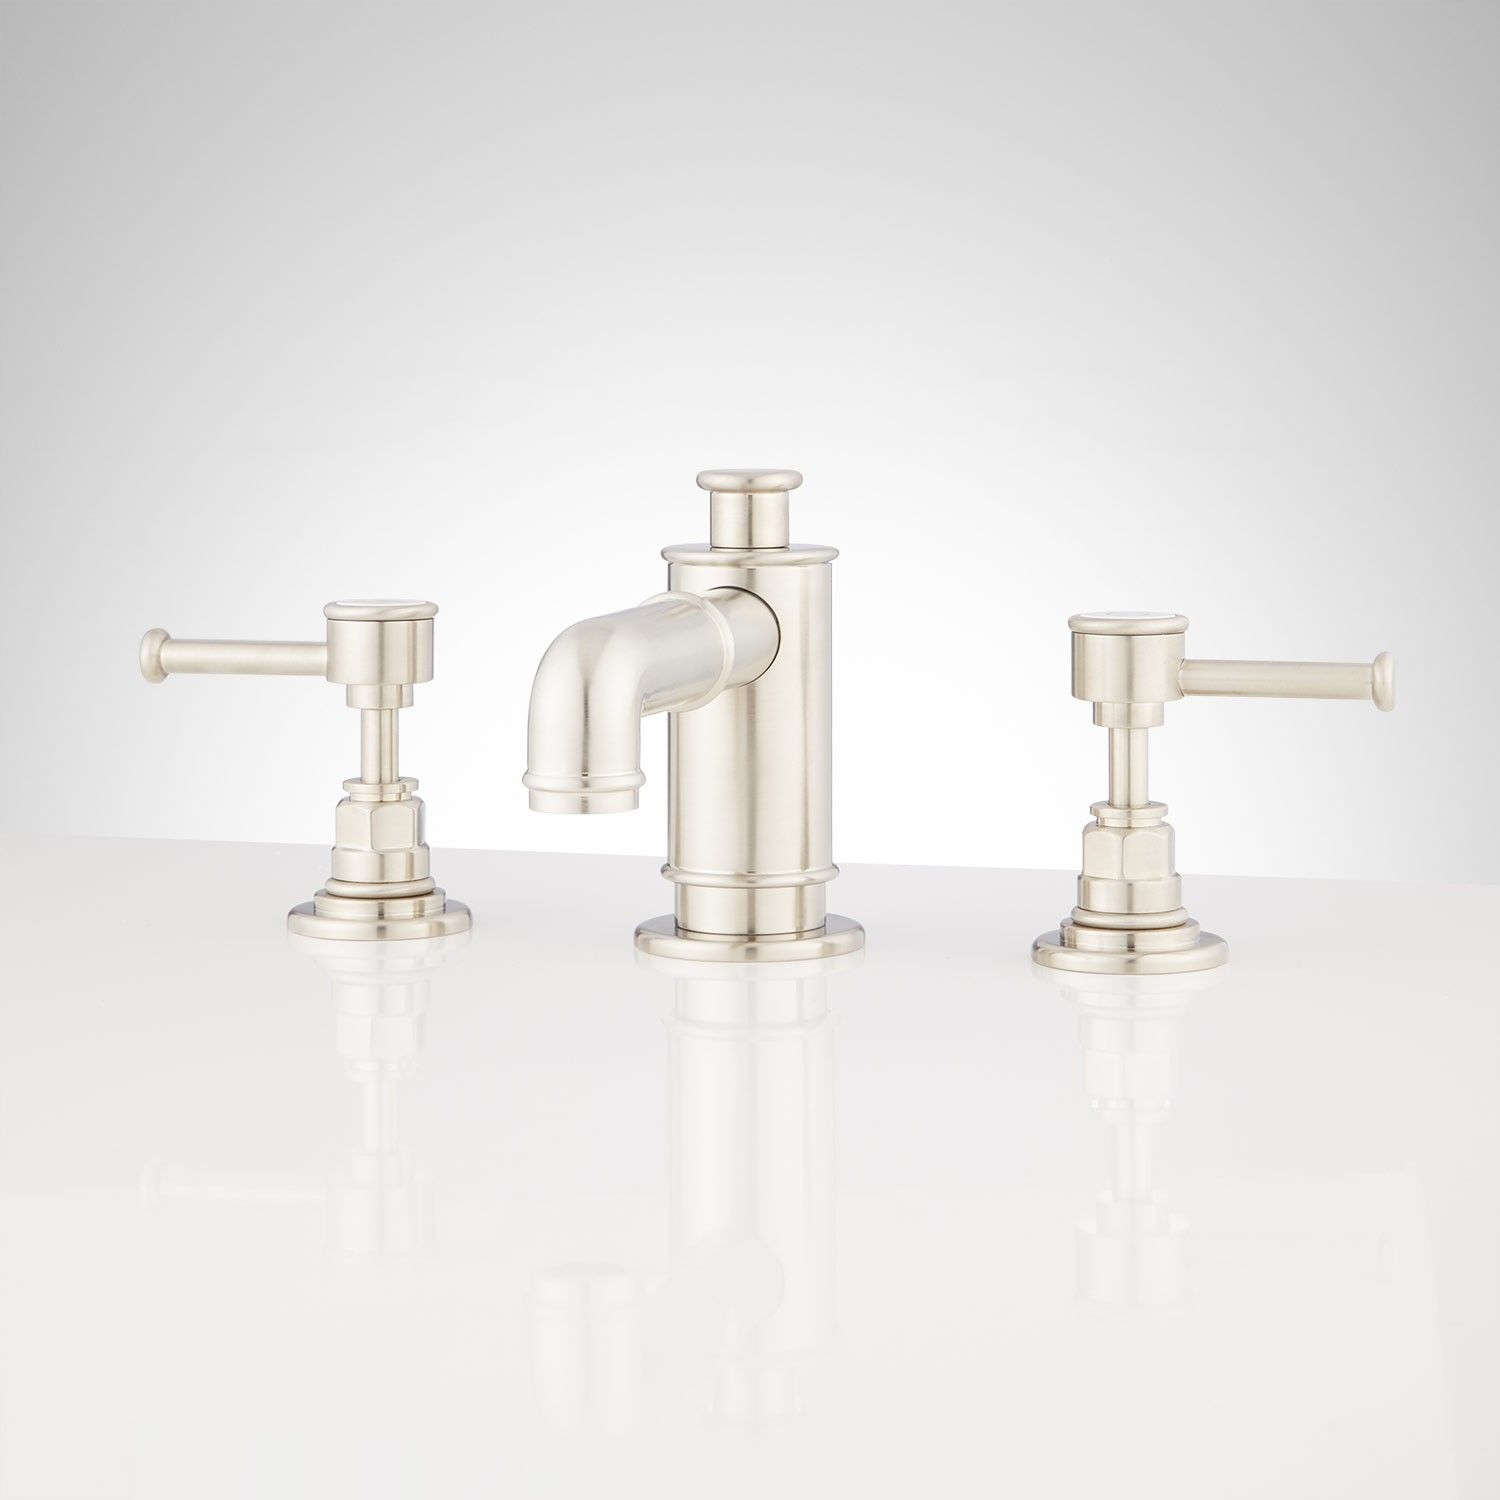 Waterson Widespread Bathroom Faucet With Lever Handles | 3 point ...